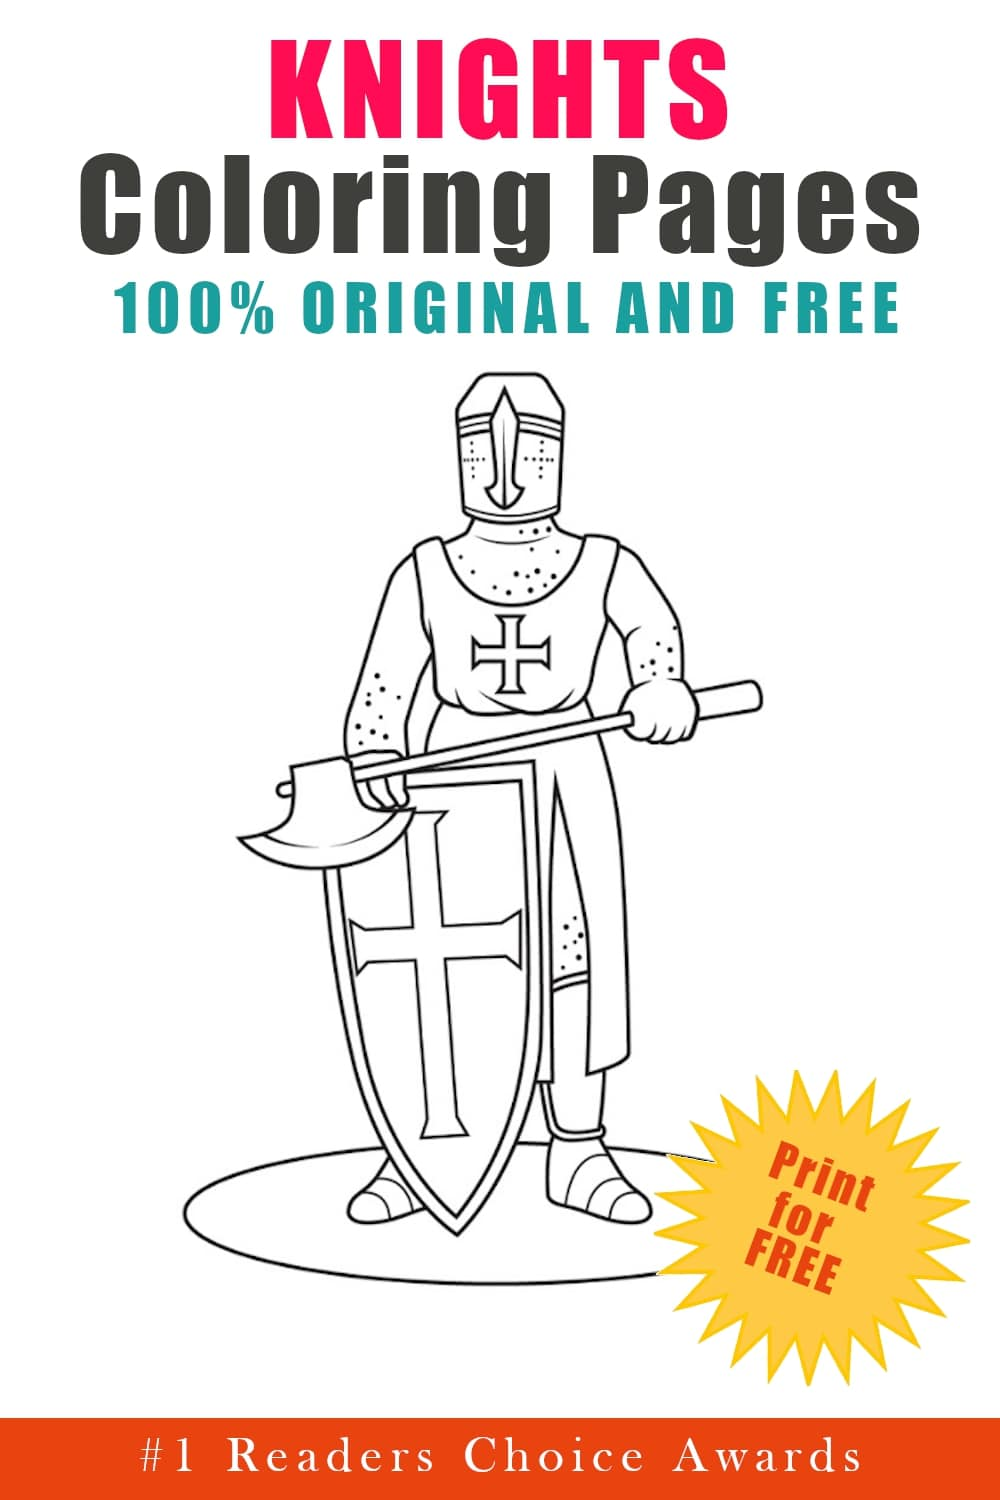 original and free knights coloring pages